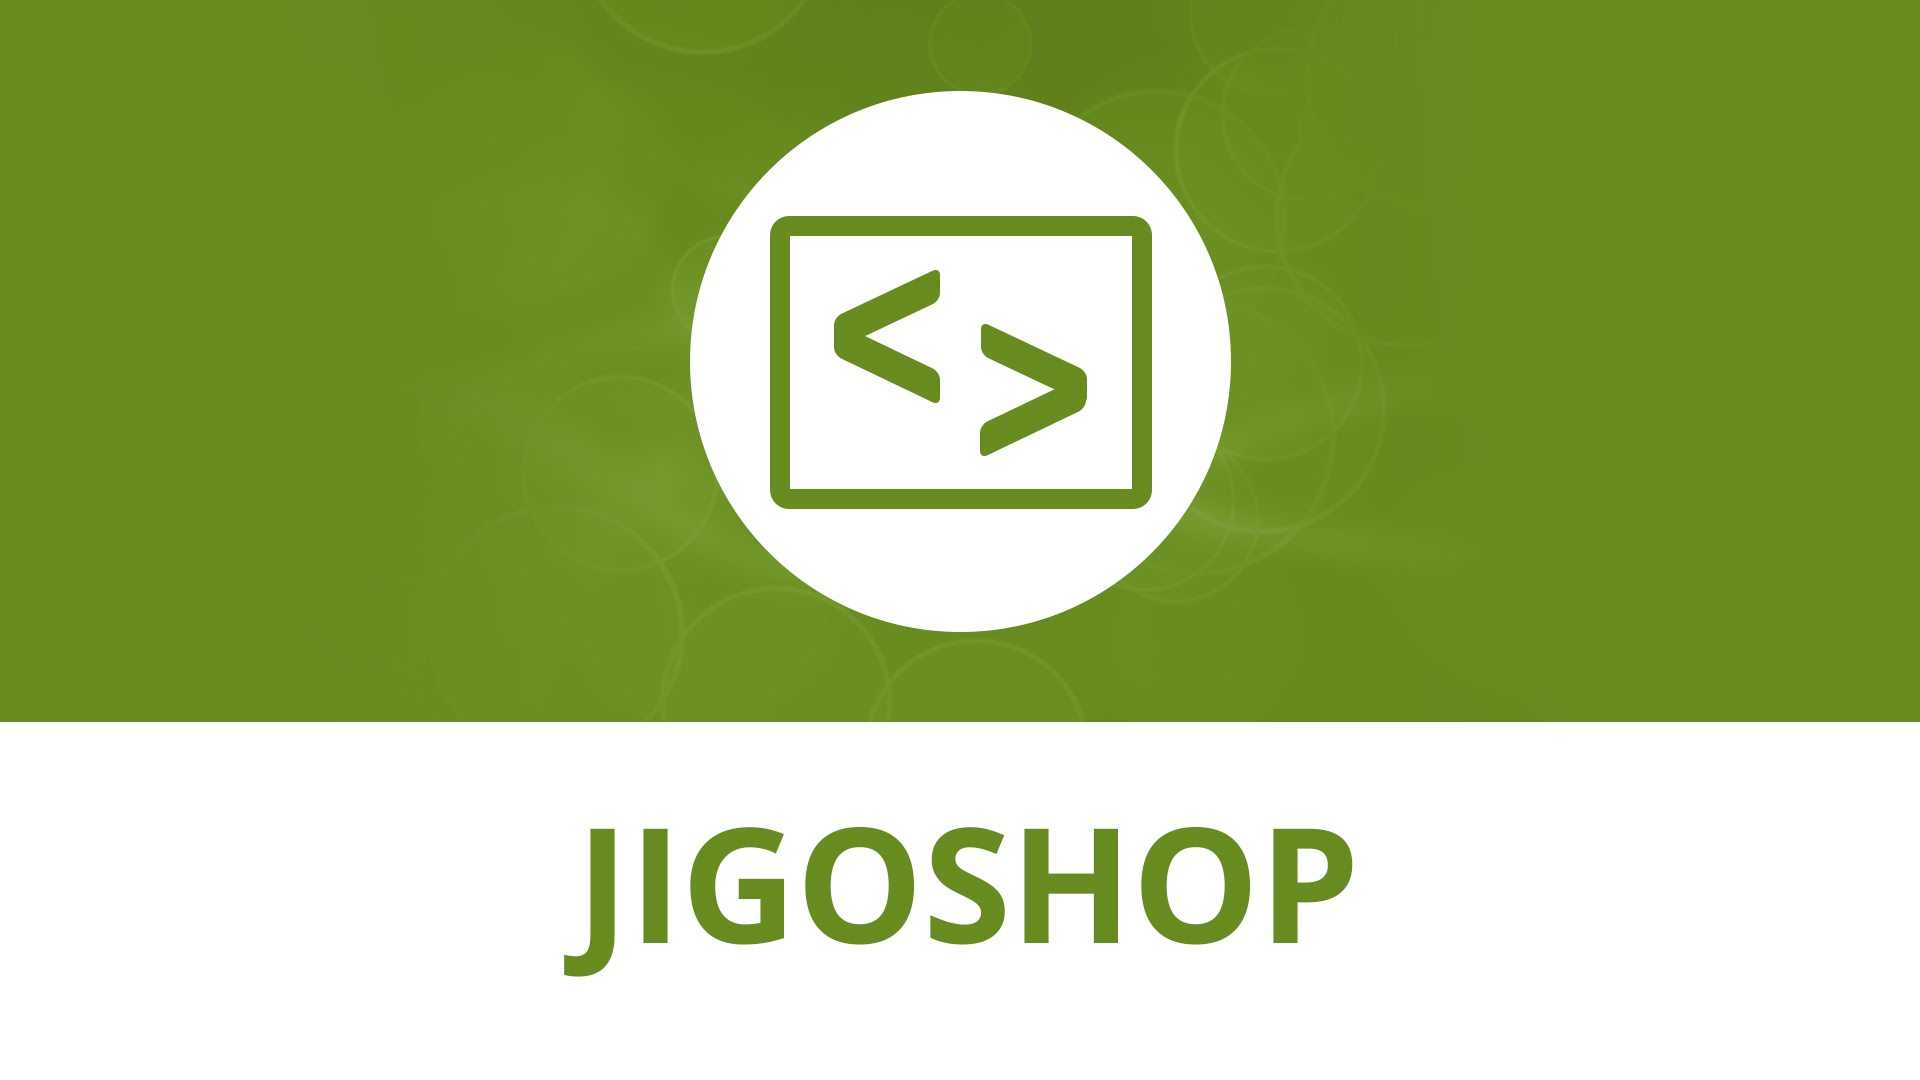 how to increase memory in jigoshop